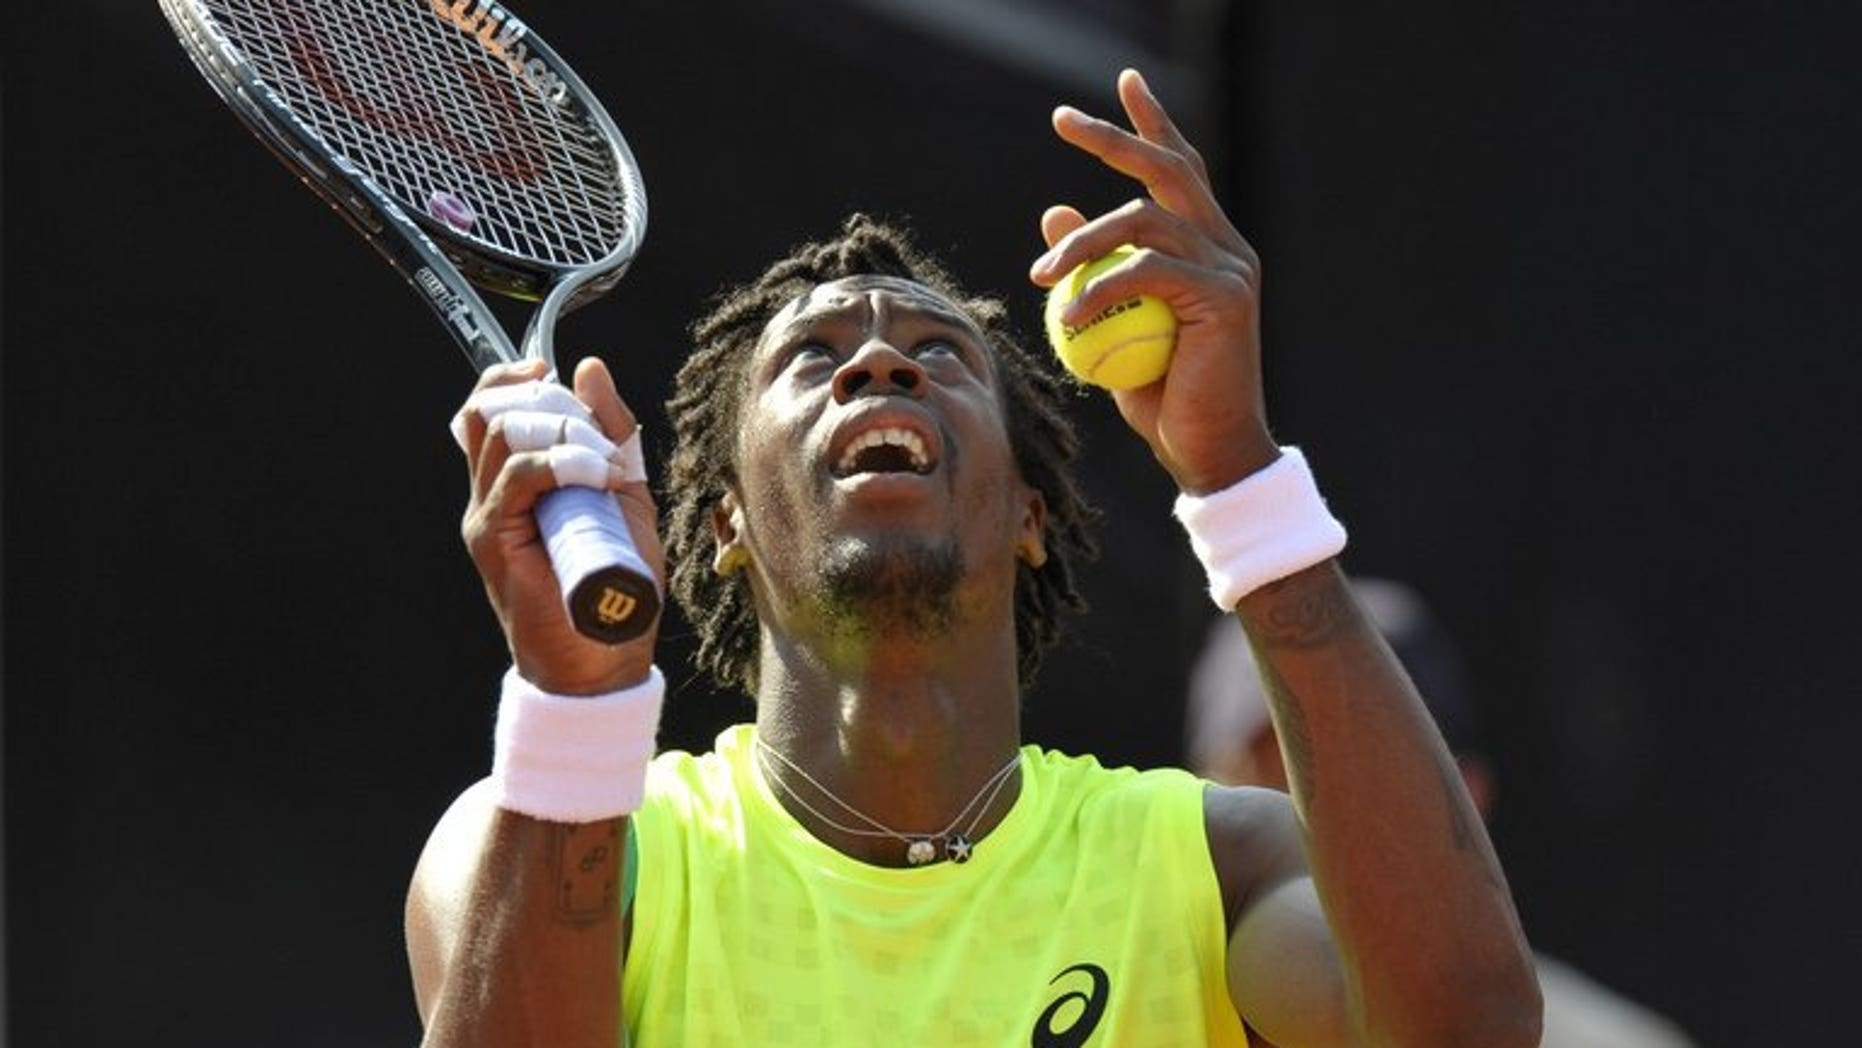 France's Gael Monfils, pictured during a match in Stuttgart, southwestern Germany, on July 12, 2013. Monfils, ranked 49th in the world, withdrew from next week's ATP event in Montreal after suffering an ankle injury in practice.